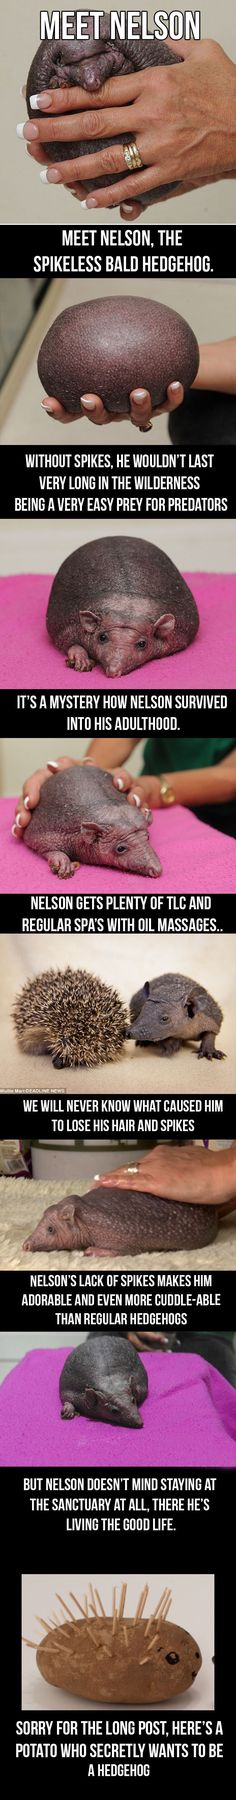 Meet Nelson, the bald hedgehog